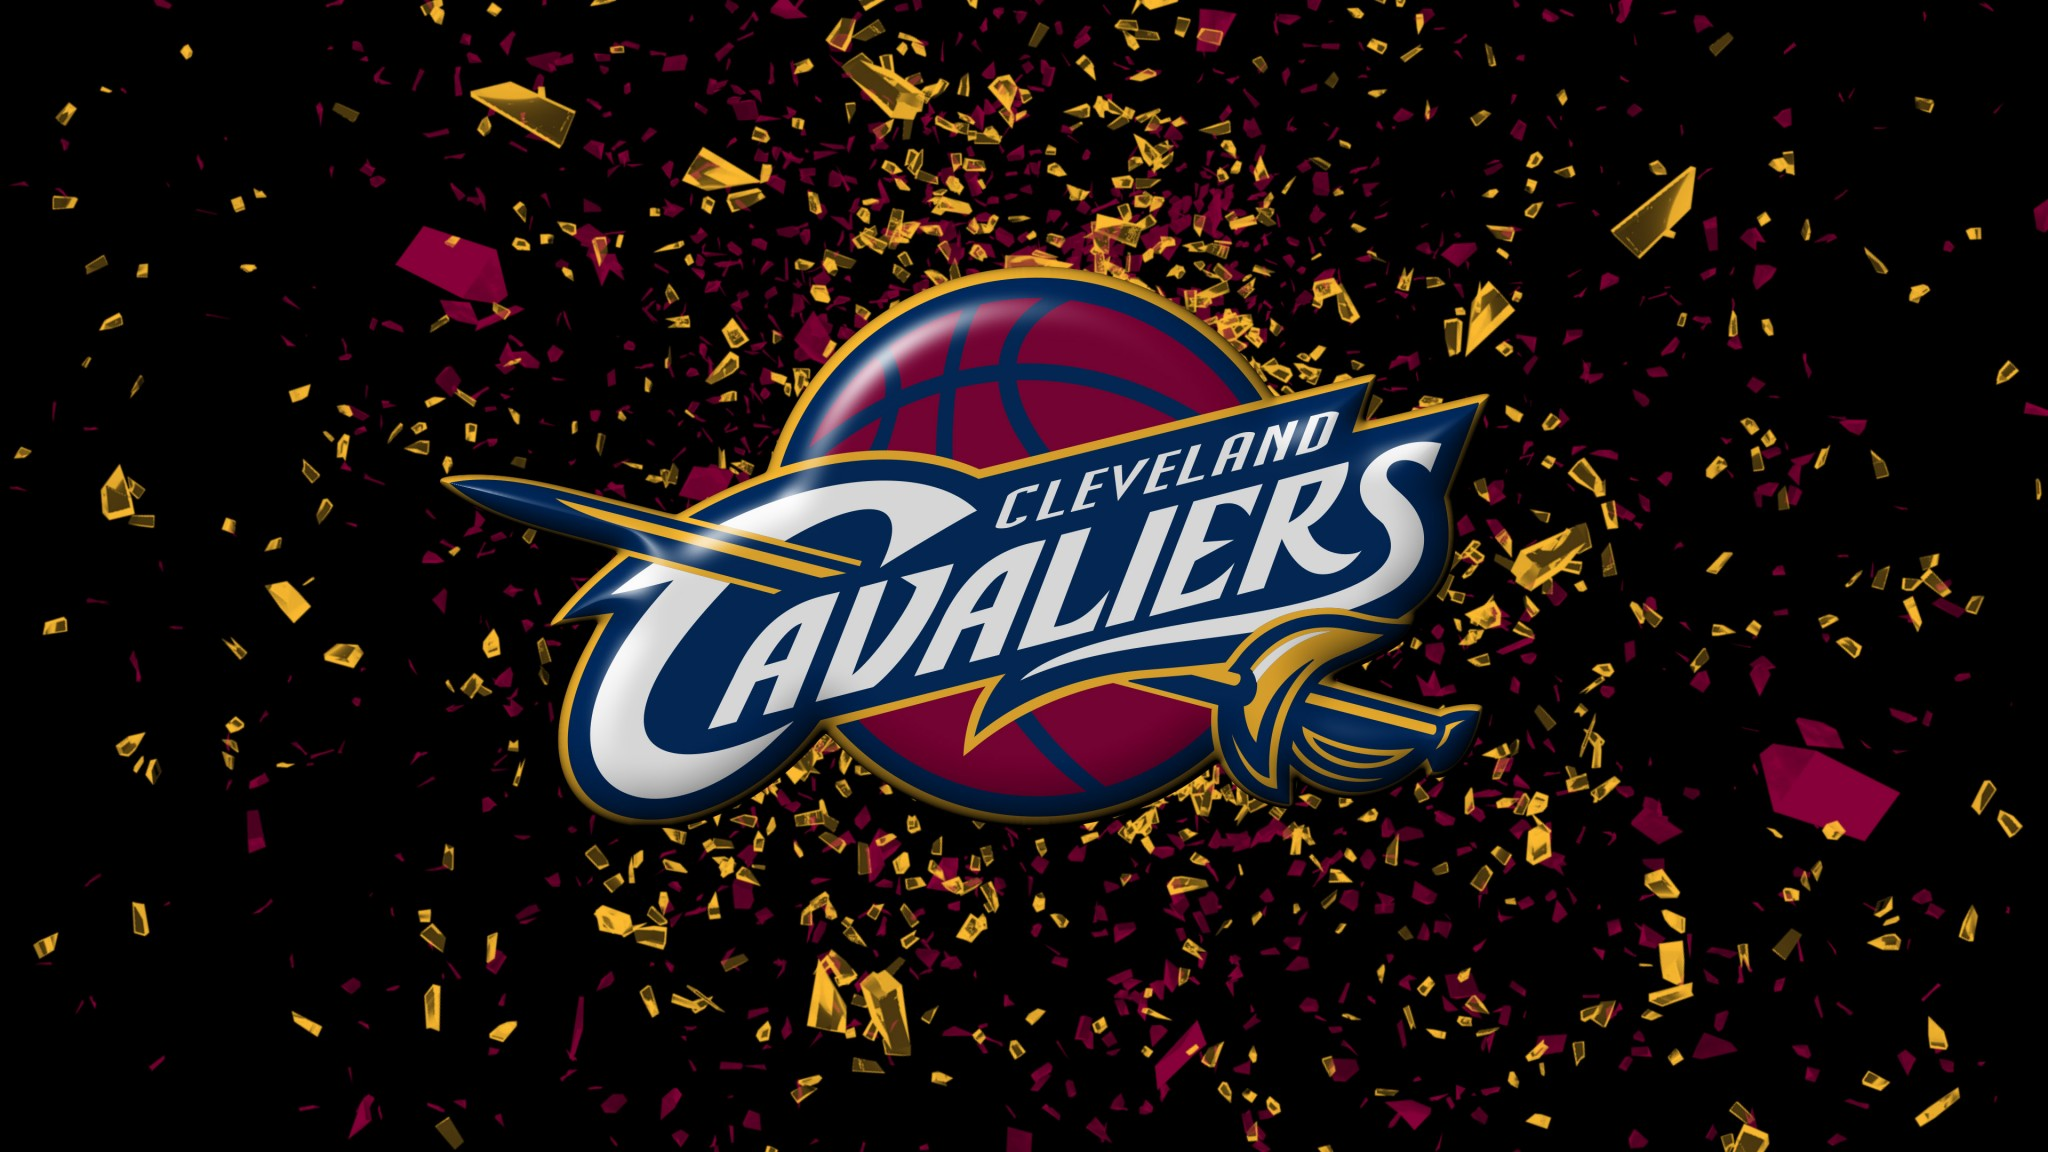 Kyrie irving and Cavaliers logo